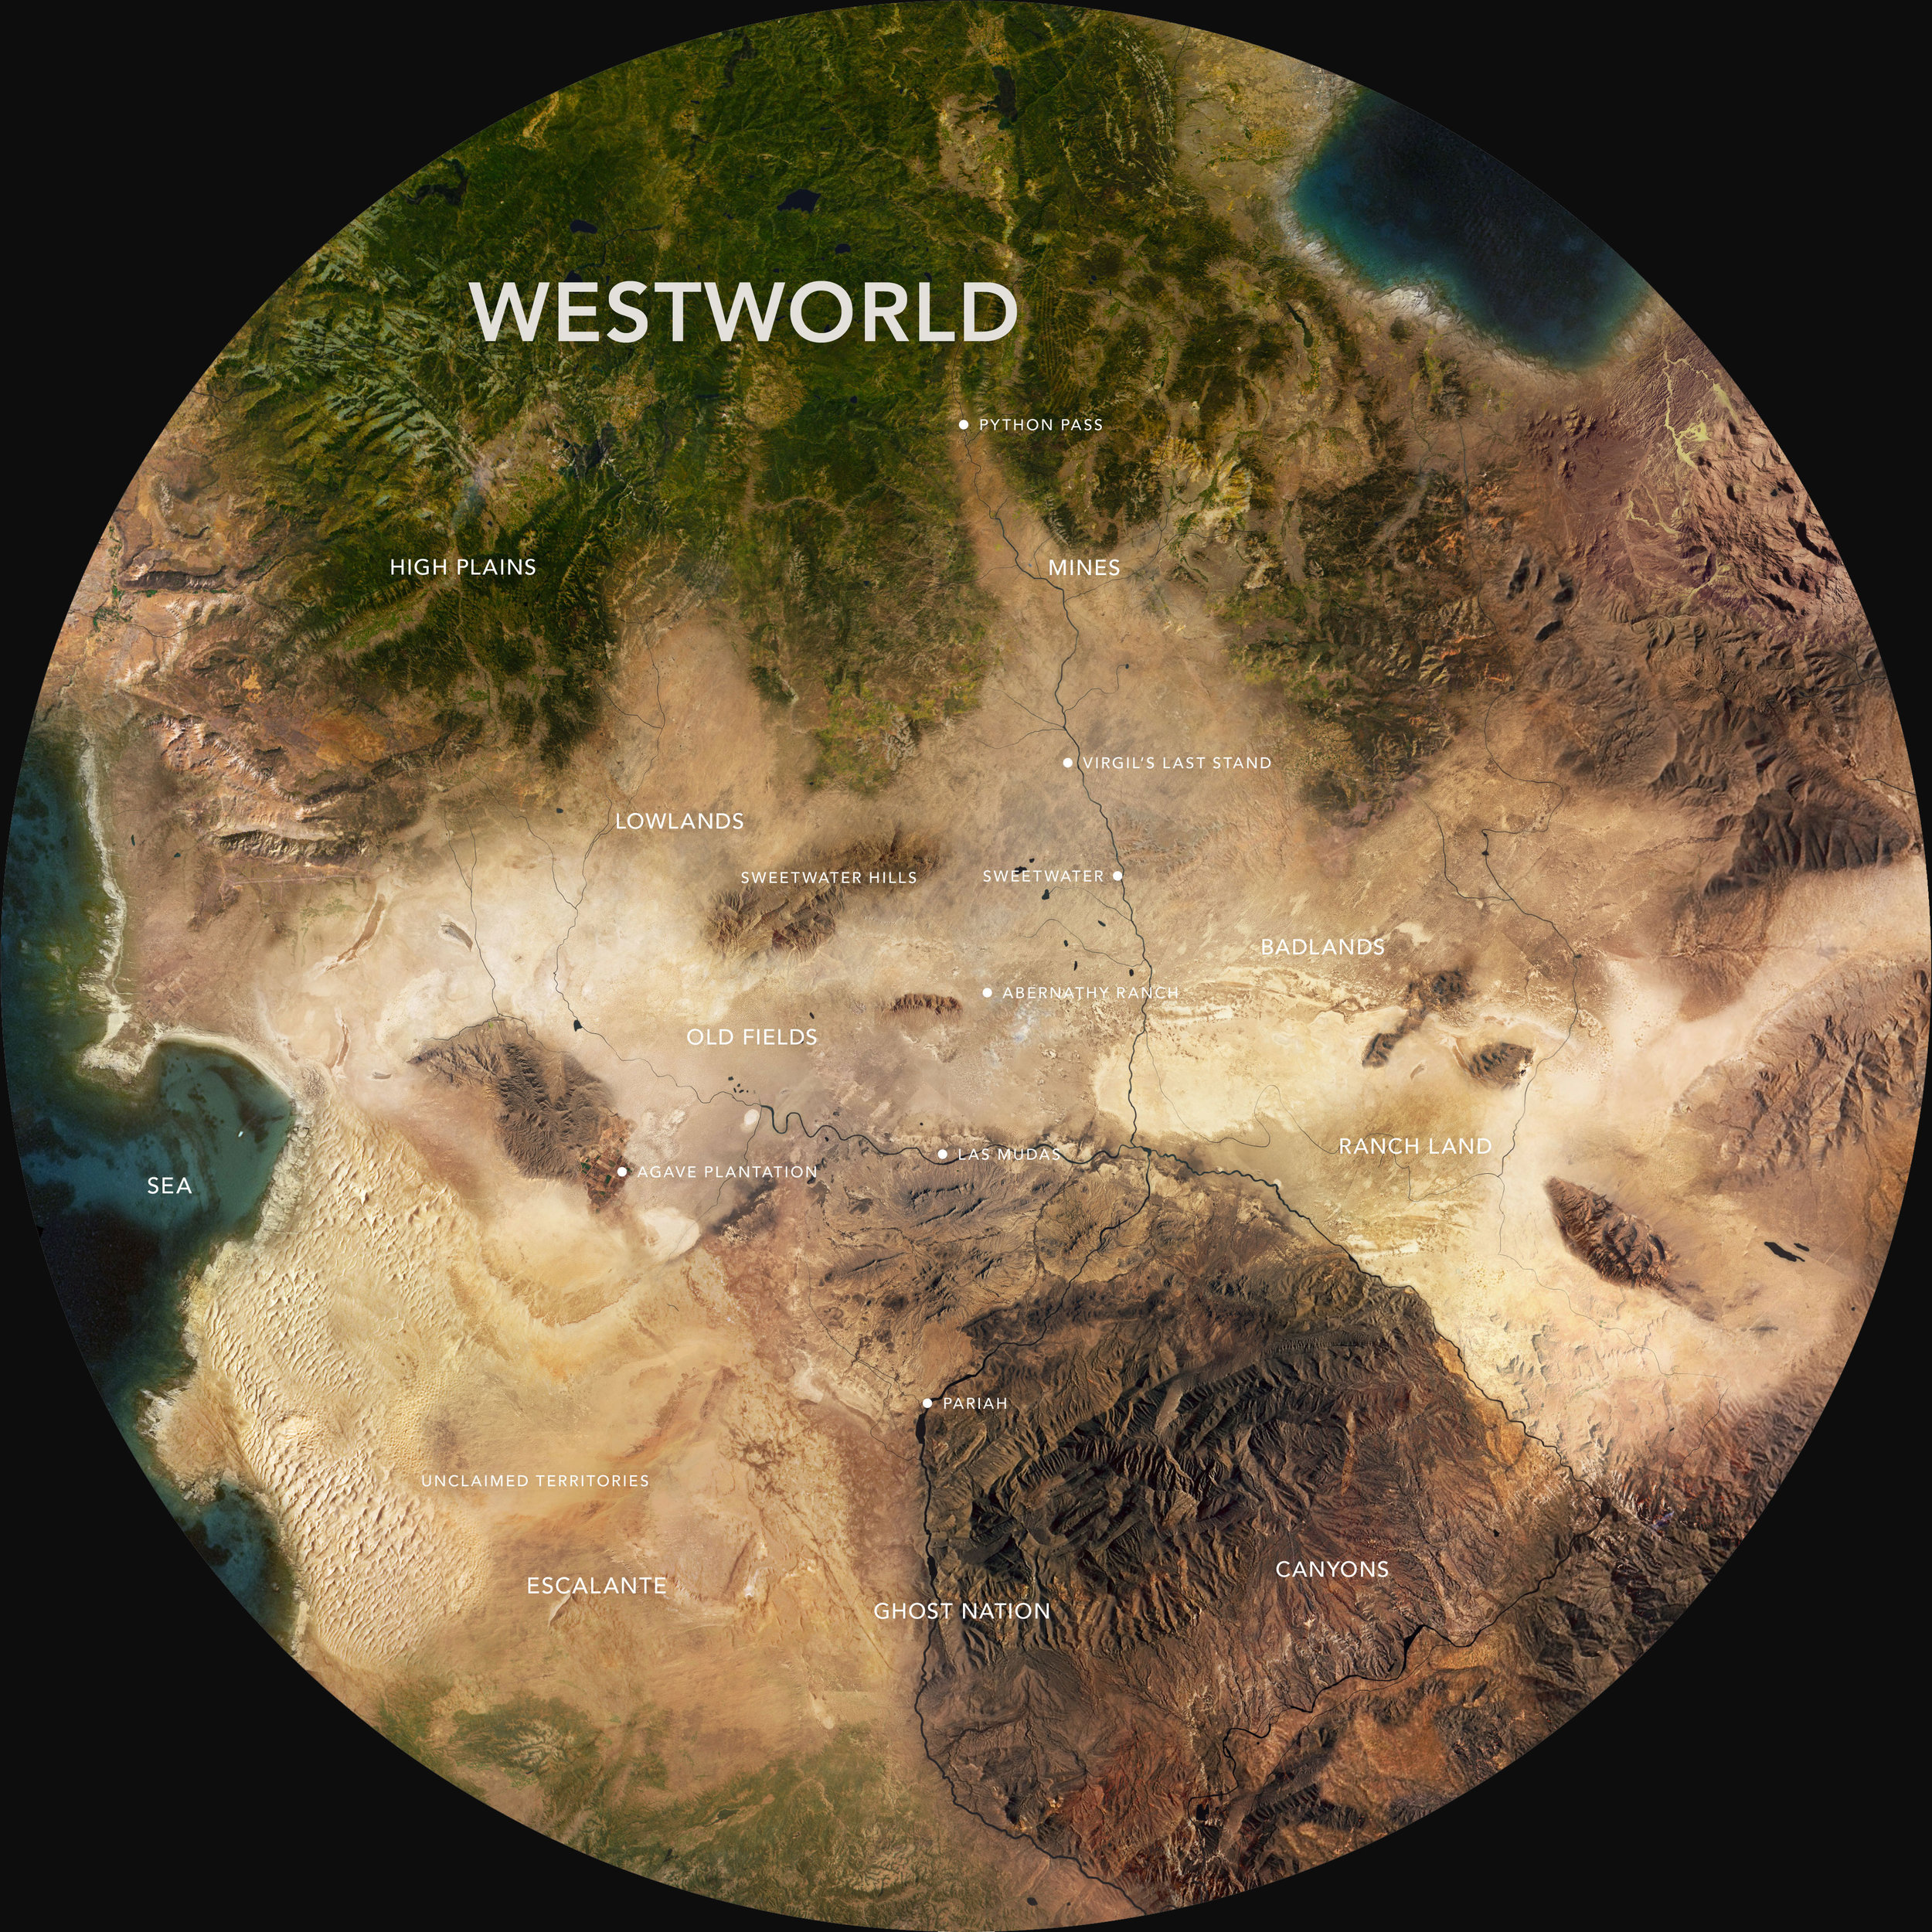 ww_ph2_map_build_FOR_ANI_TEXTED_WESTWORLD_2_3.jpg